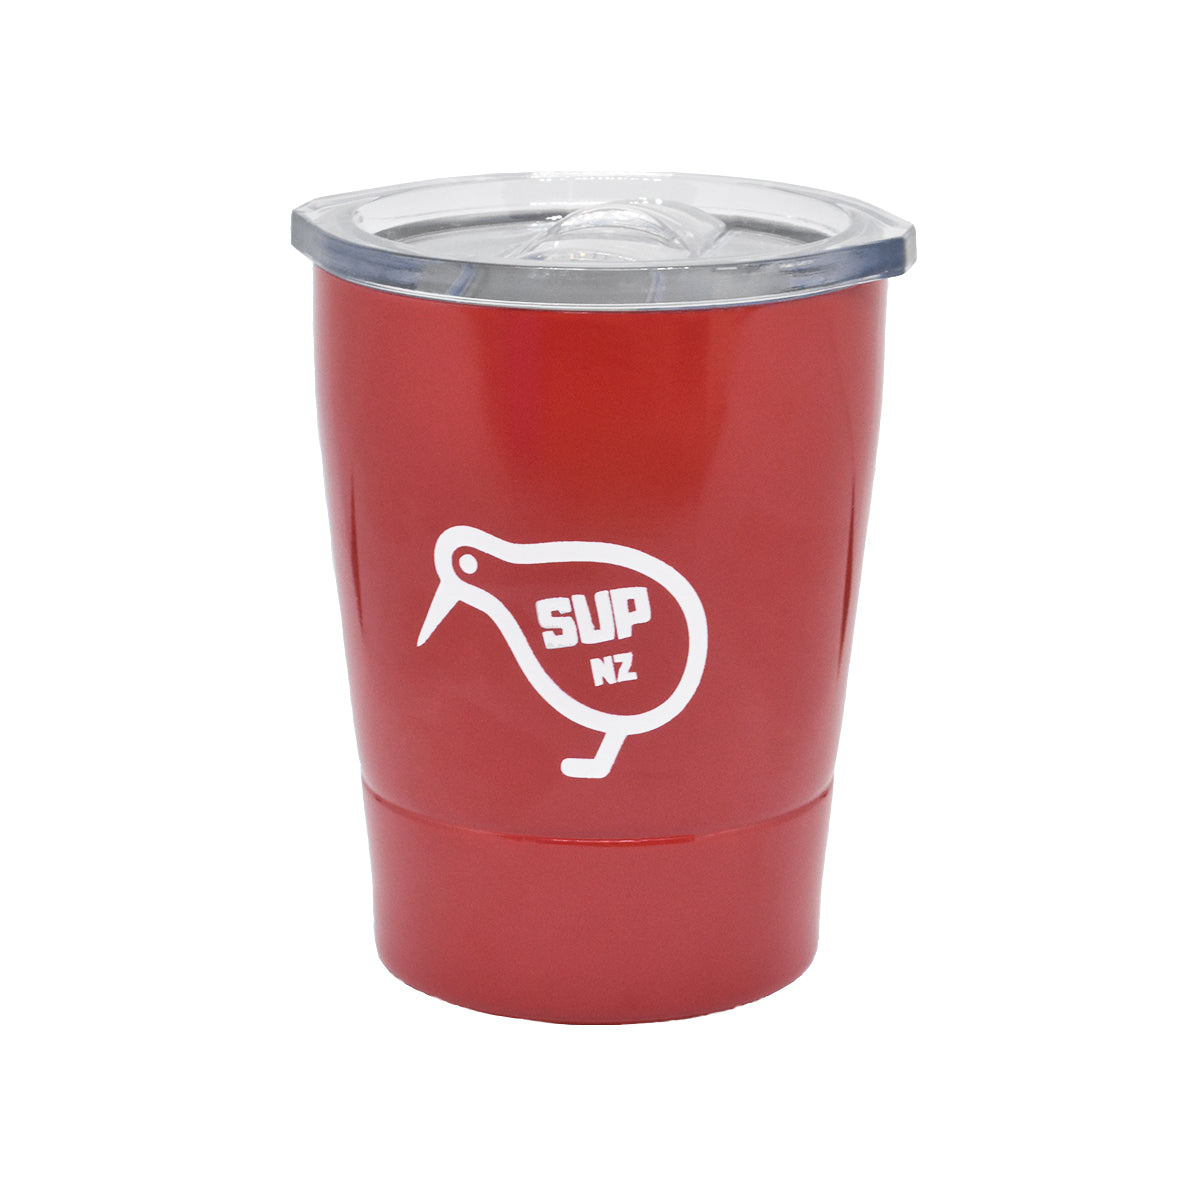 8oz stainless steel reusable cup red